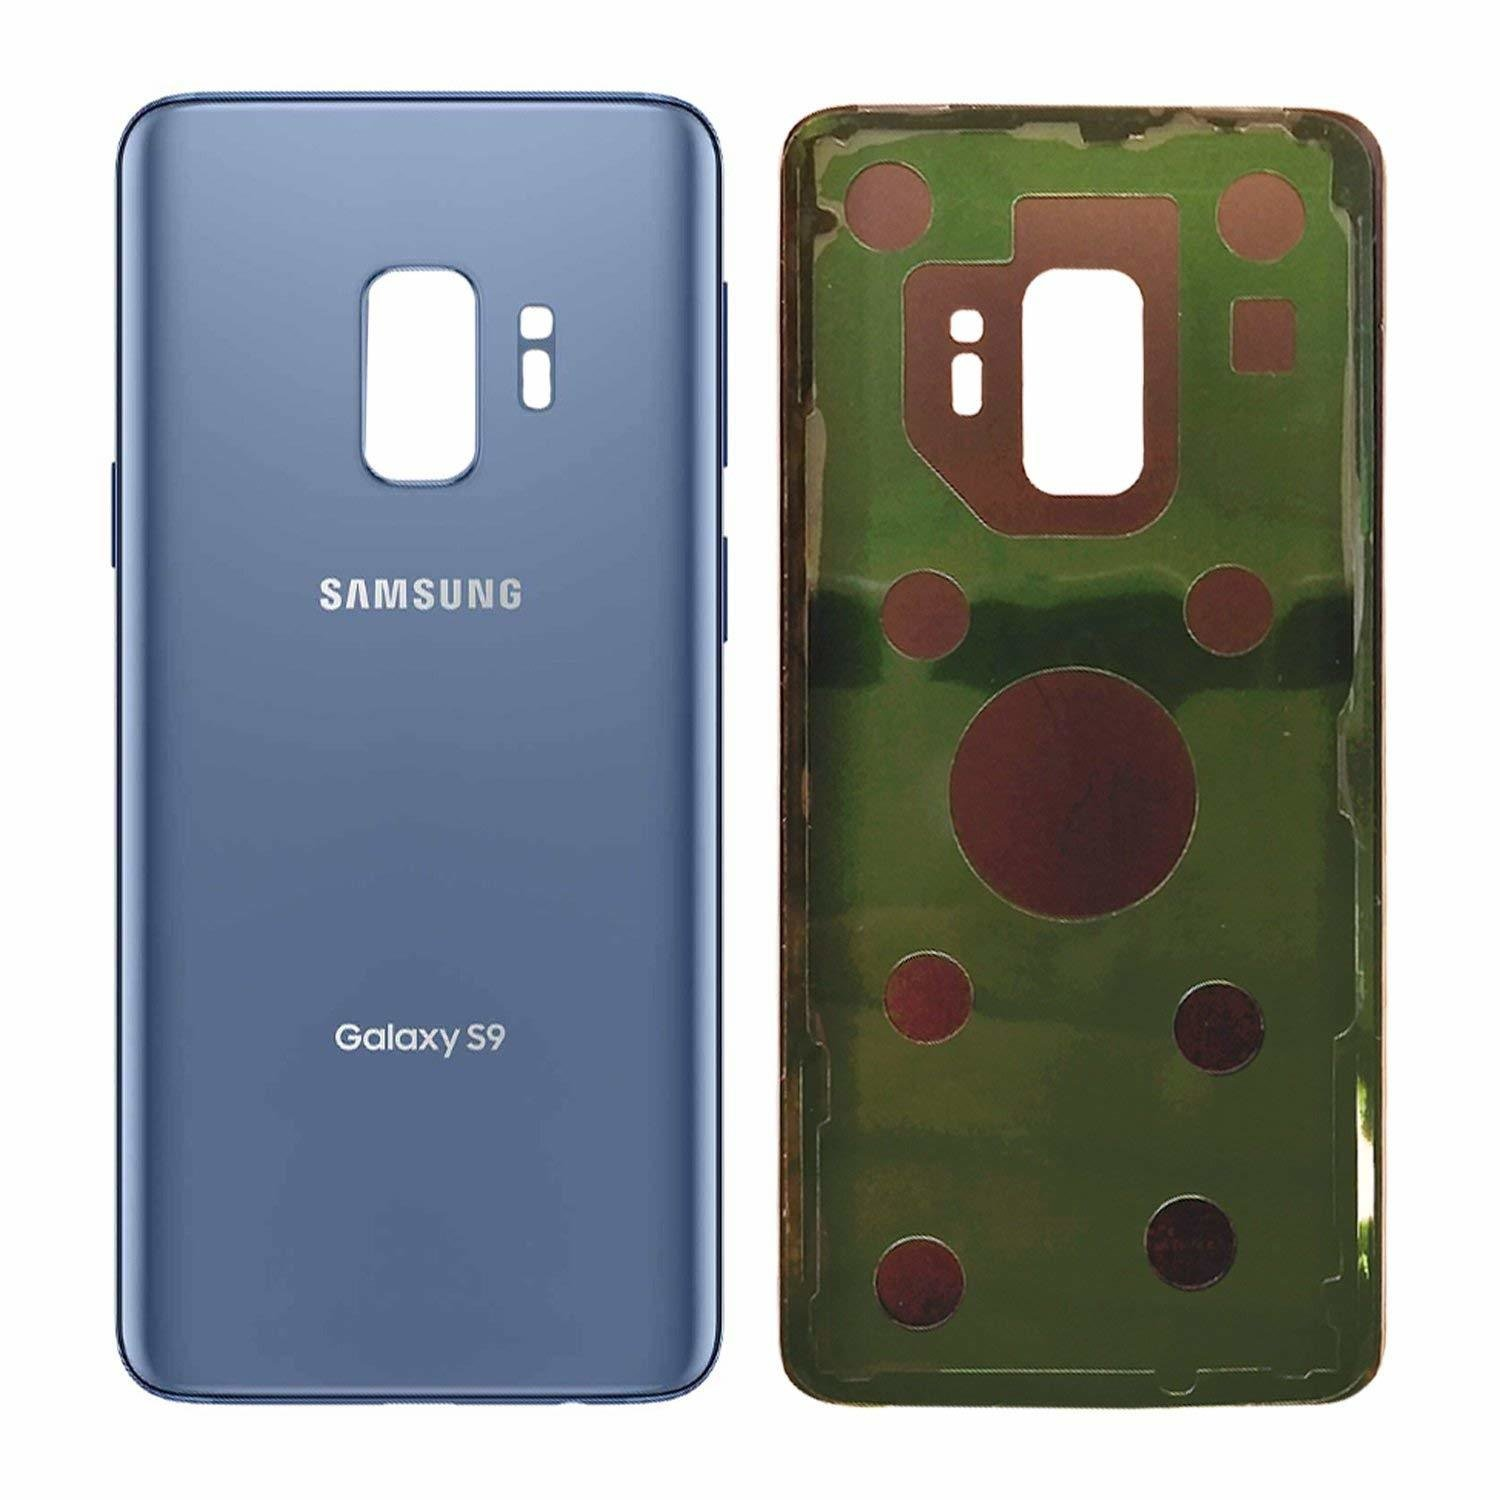 Samsung S9 Back Cover Replacement - Blue